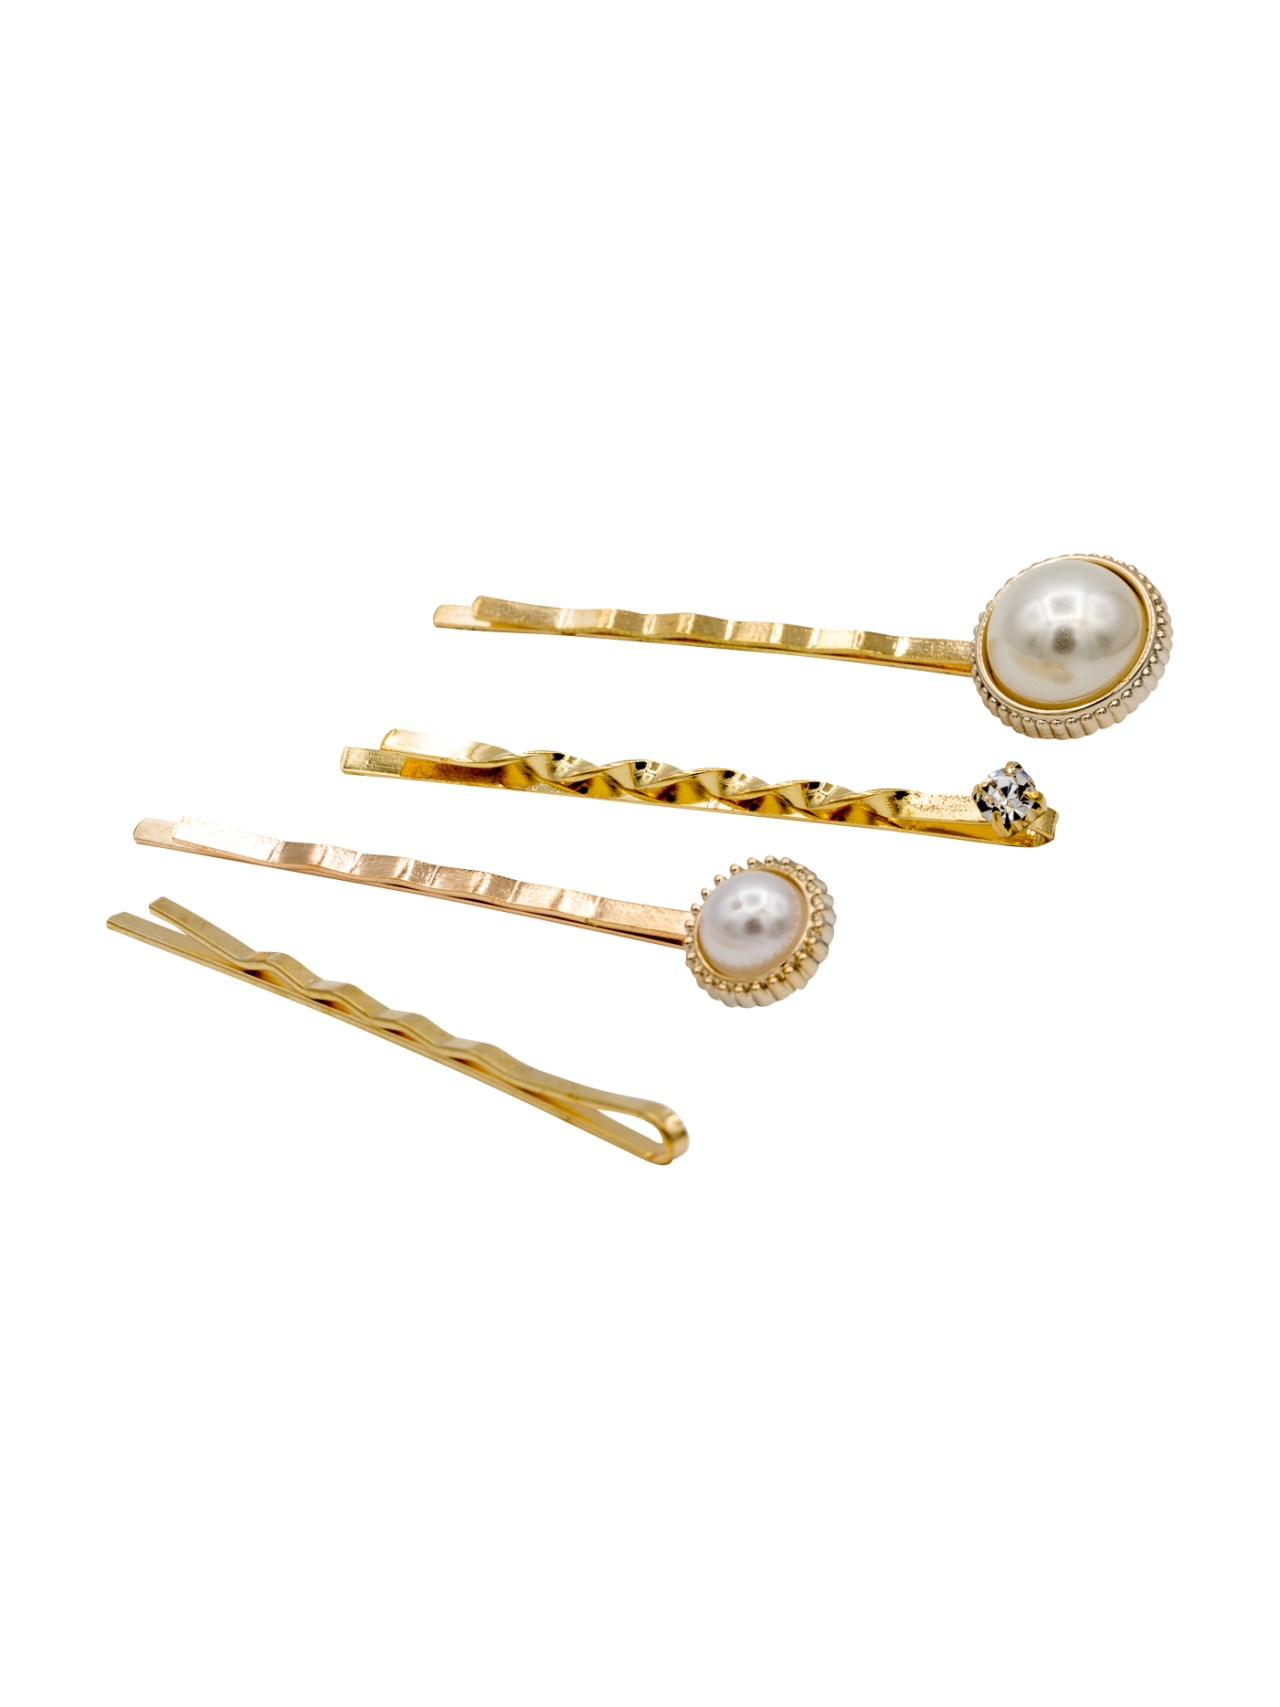 Gold bobby pins set with pearls